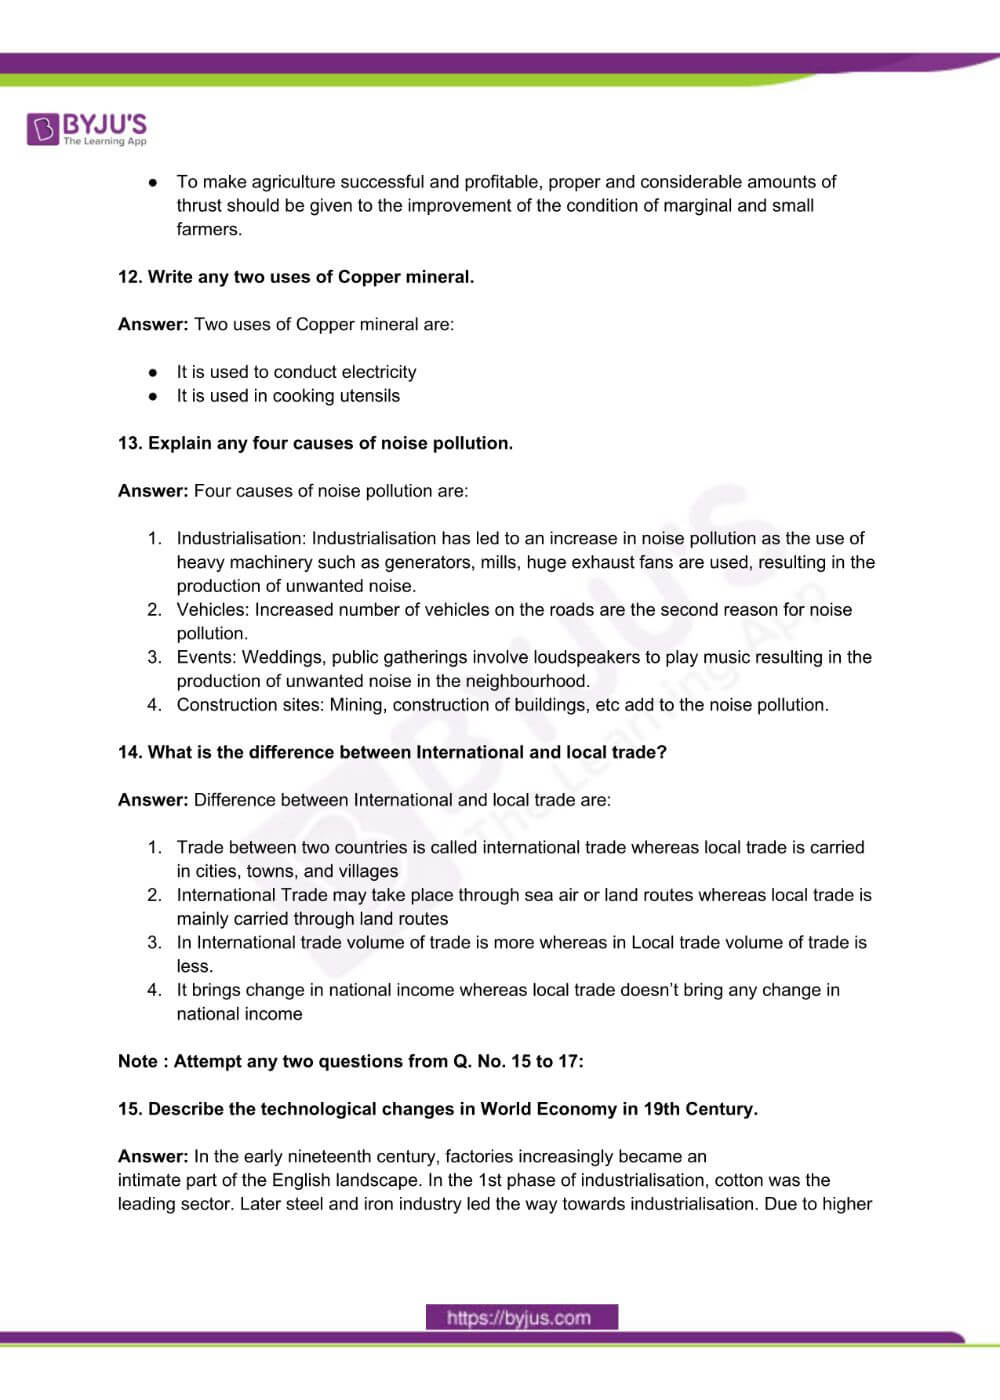 RBSE Class 10 Social Science Question Paper Solutions 2017 PDF 2